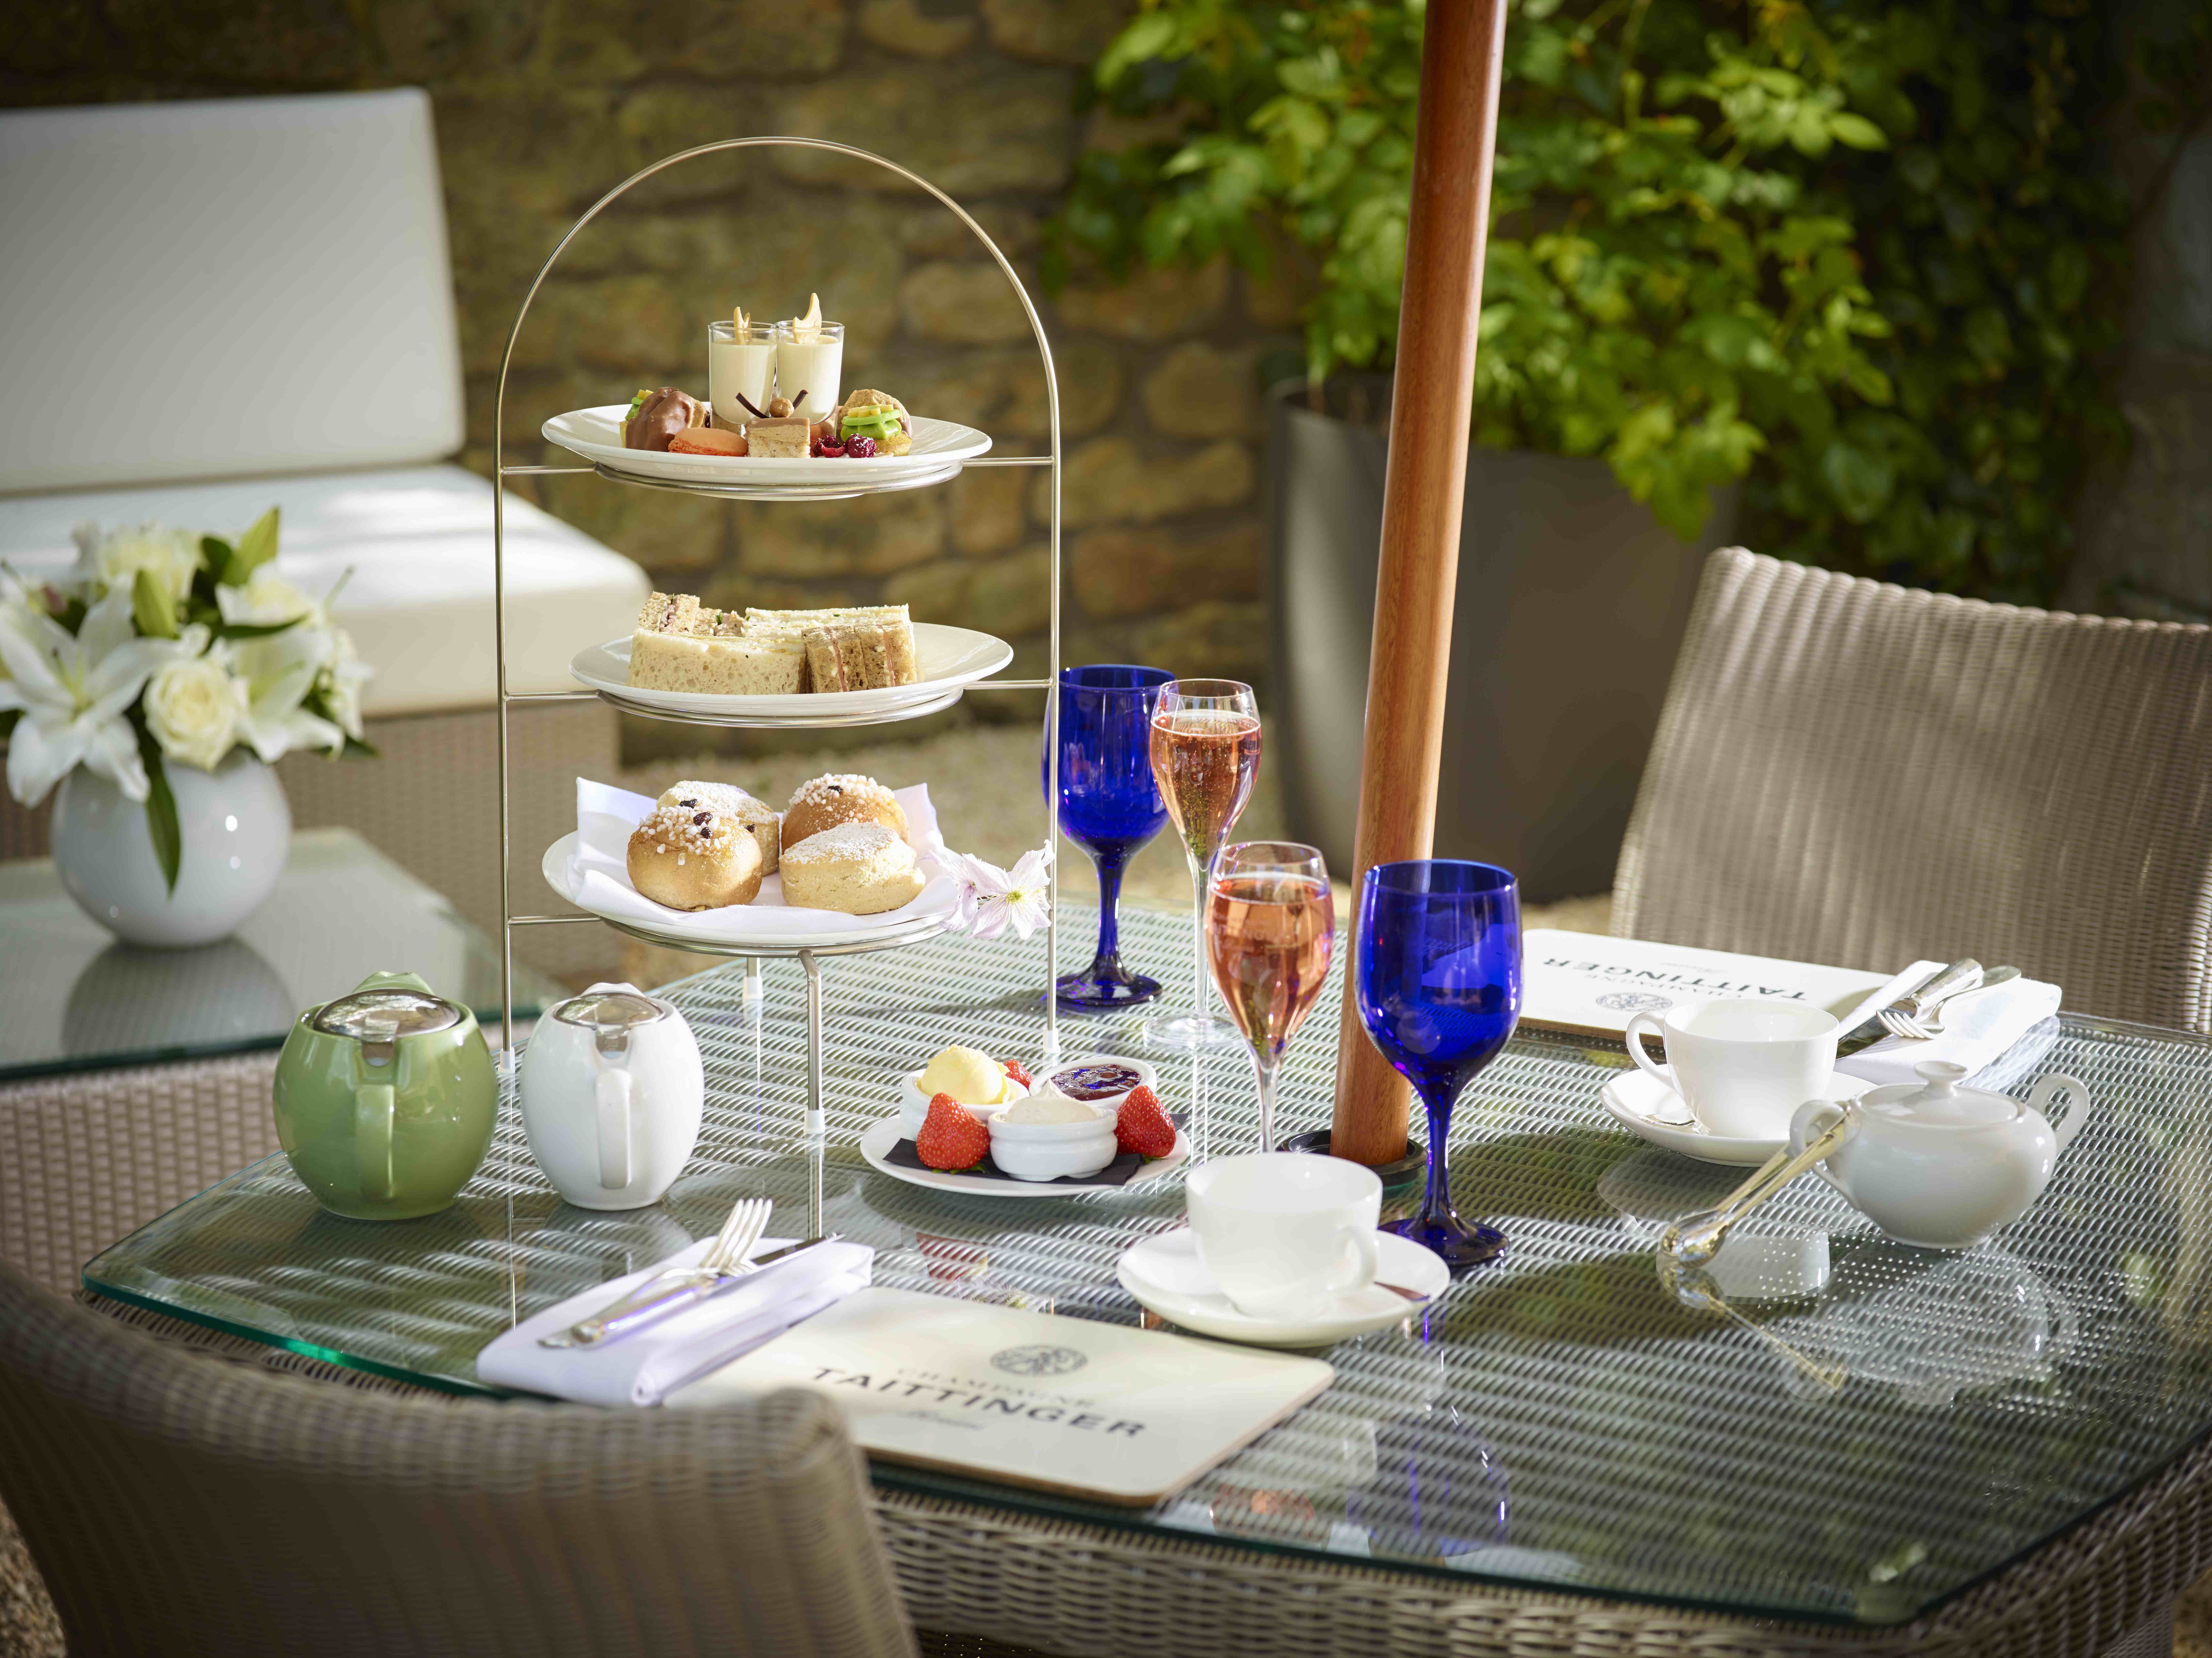 Champagne Afternoon Tea at Royal Crescent Hotel, Bath